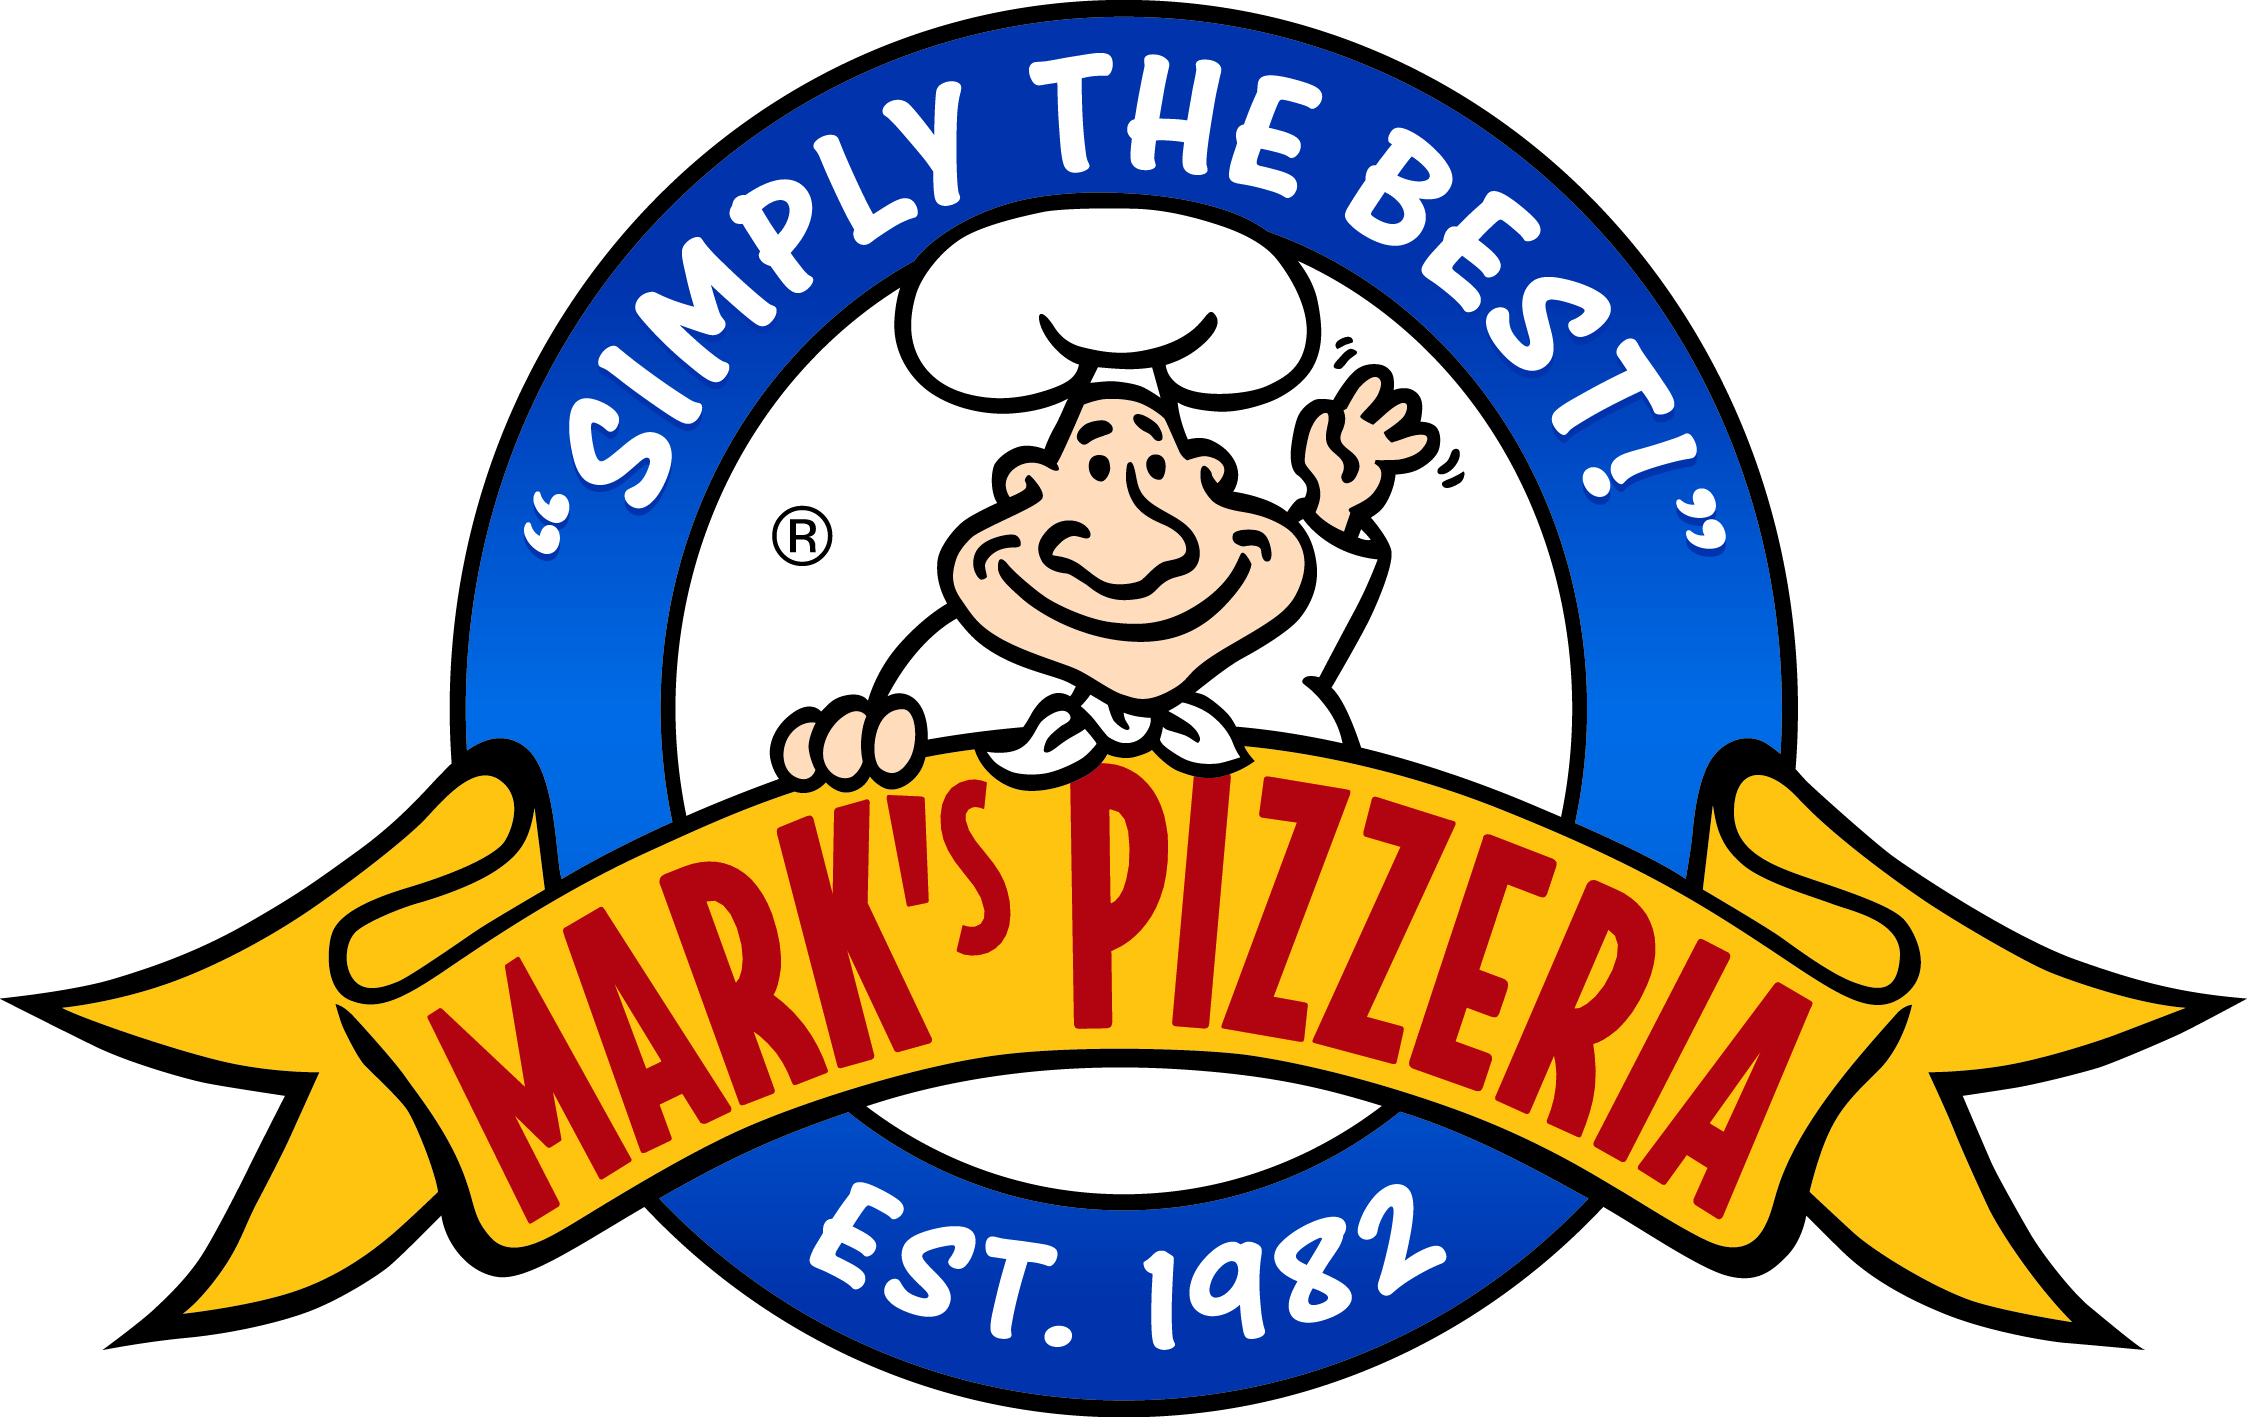 Mark's Pizzeria Rochester